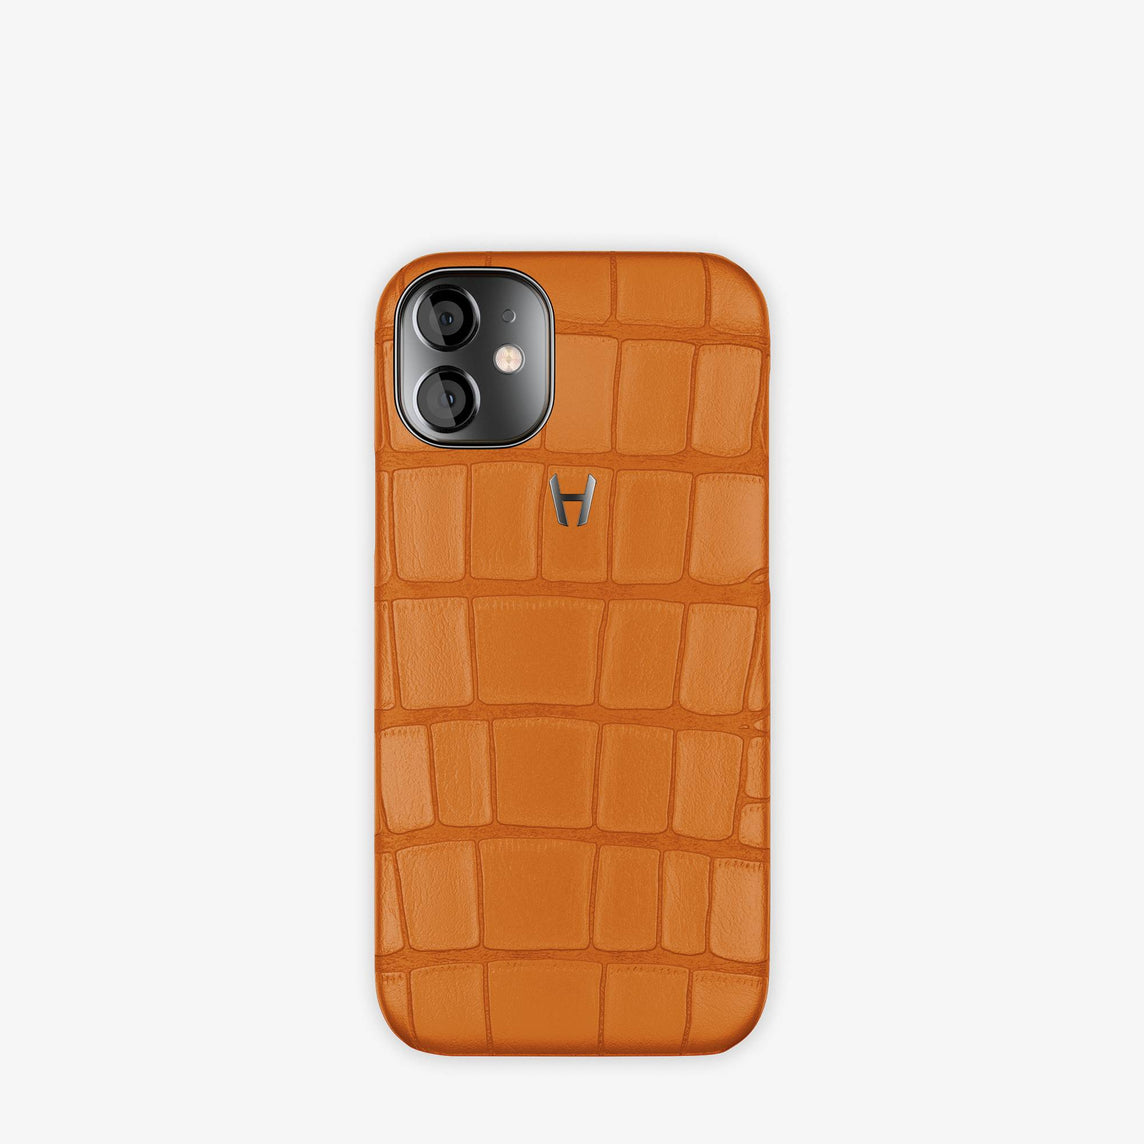 Alligator Case Apple iPhone 12 Mini | Orange - Black